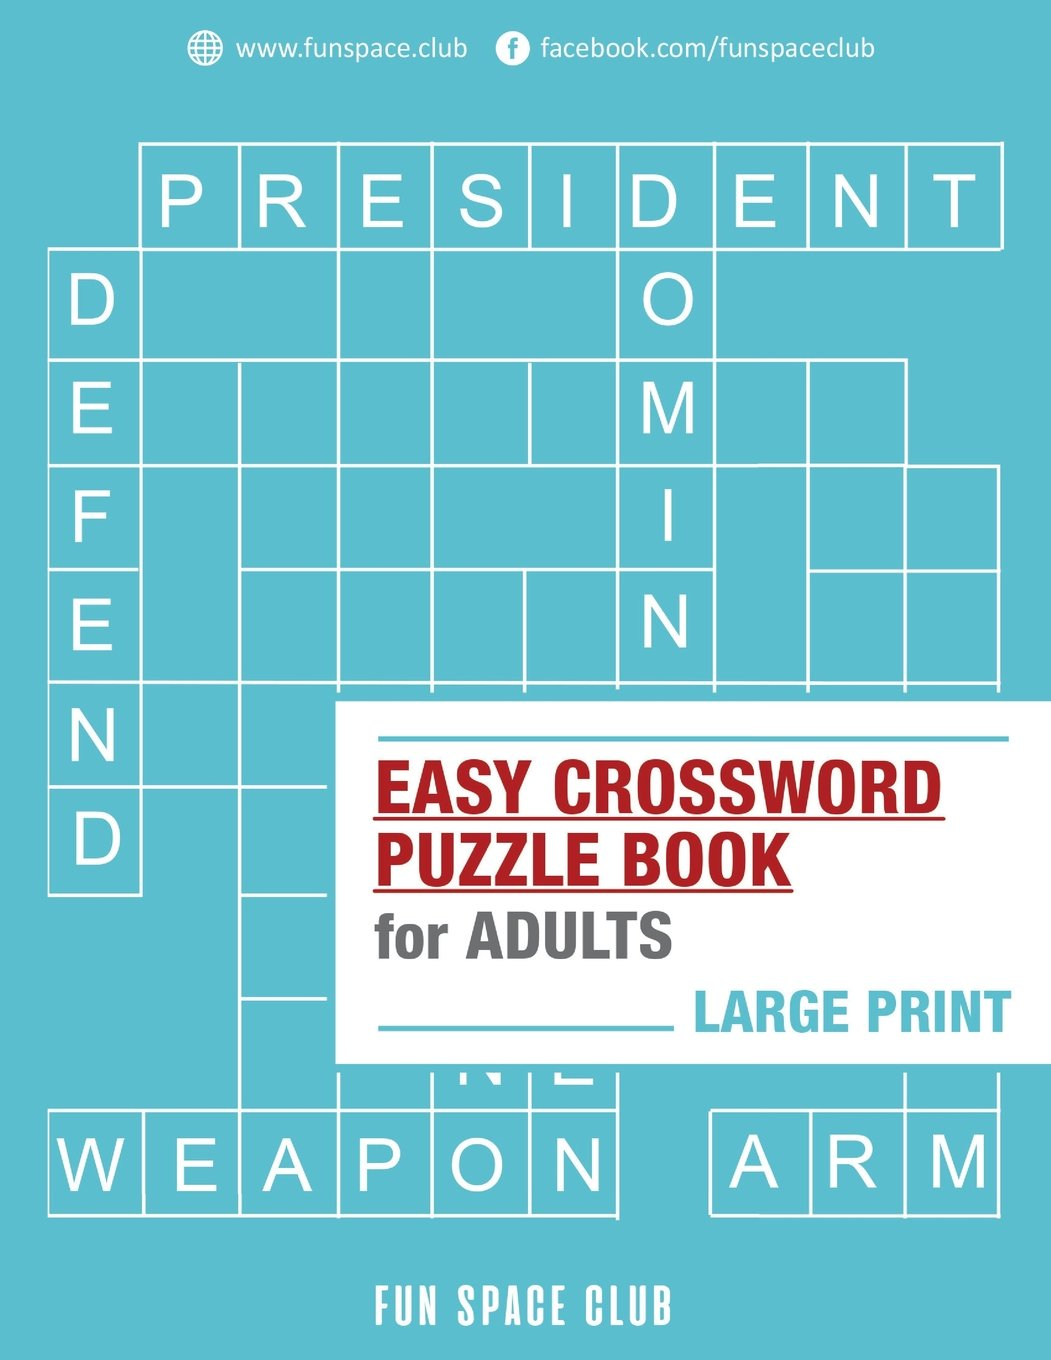 Easy Crossword Puzzle Books For Adults Large Print Crossword Easy Puzzle Books Volume 1 Crossword And Word Whizzle Search Puzzle Books For Adults Amazon Co Uk Dyer Nancy 9781720470168 Books